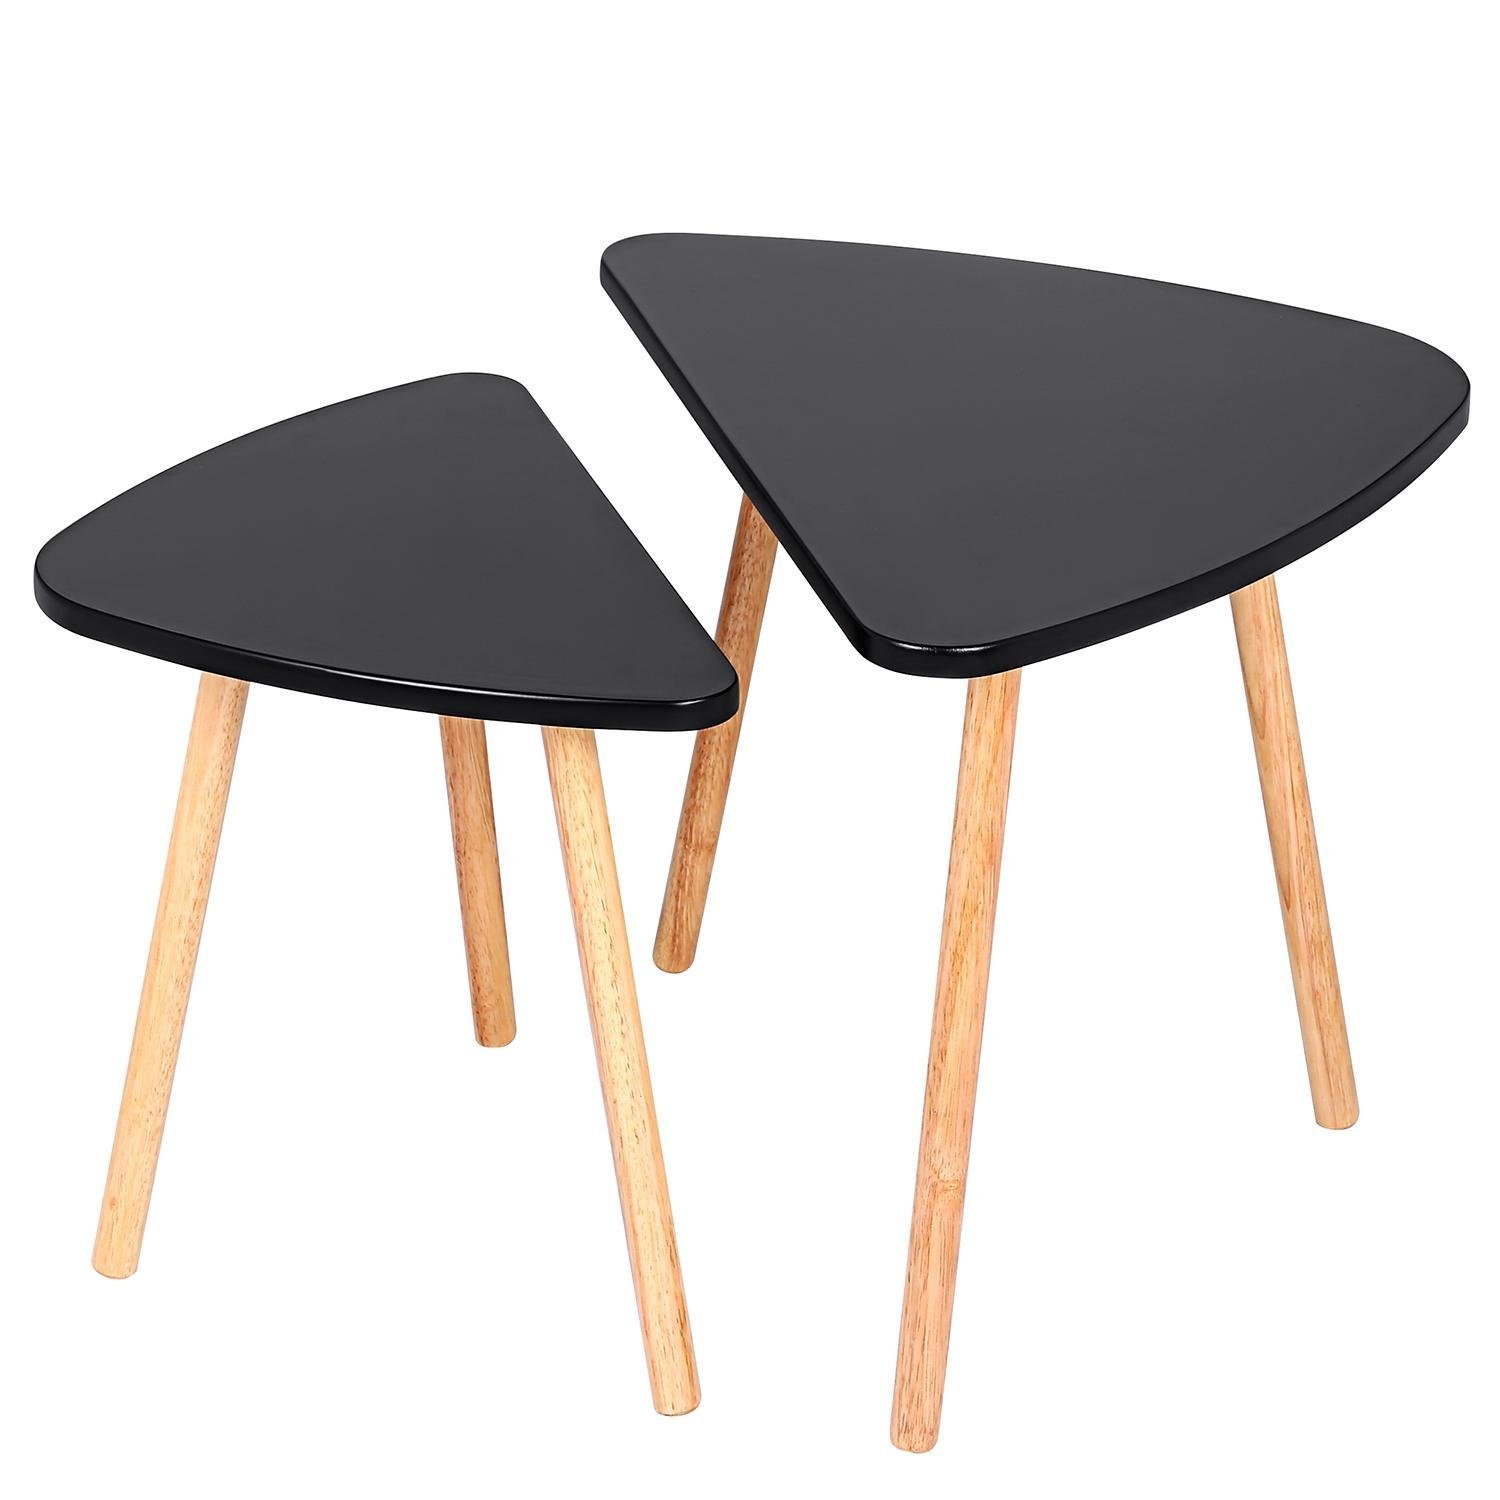 Utheing Nesting Tables Set of 2, Wooden Waterproof Small Coffee End Tables, Triangle Shape, Black